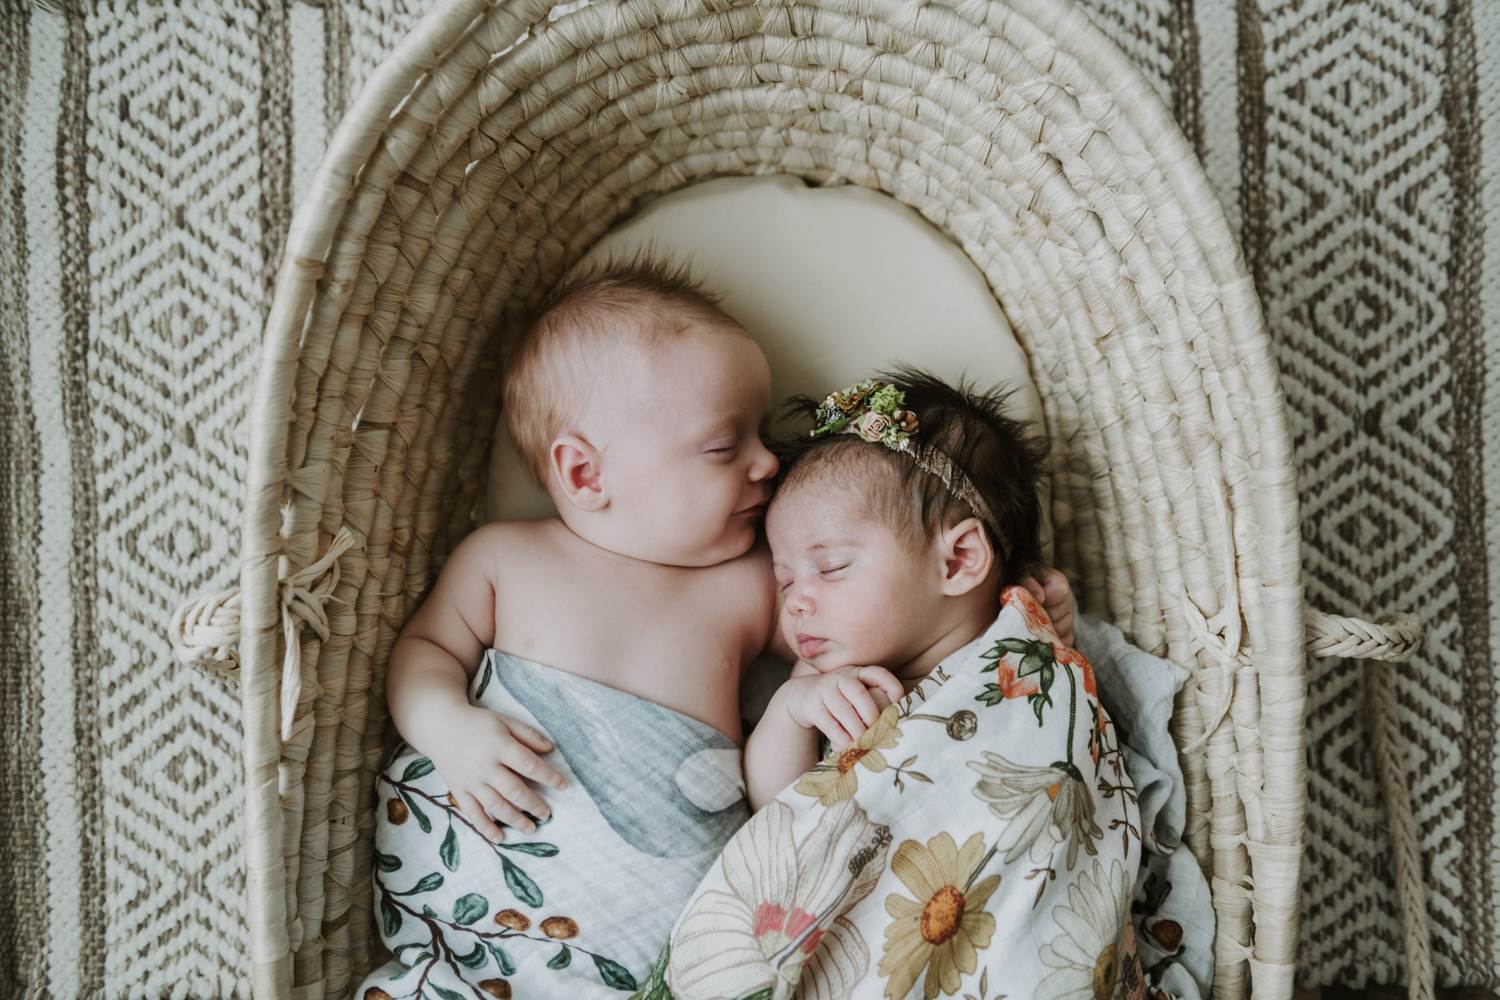 Newborn baby girl and boy wrapped in blankets while sleeping in bassinet